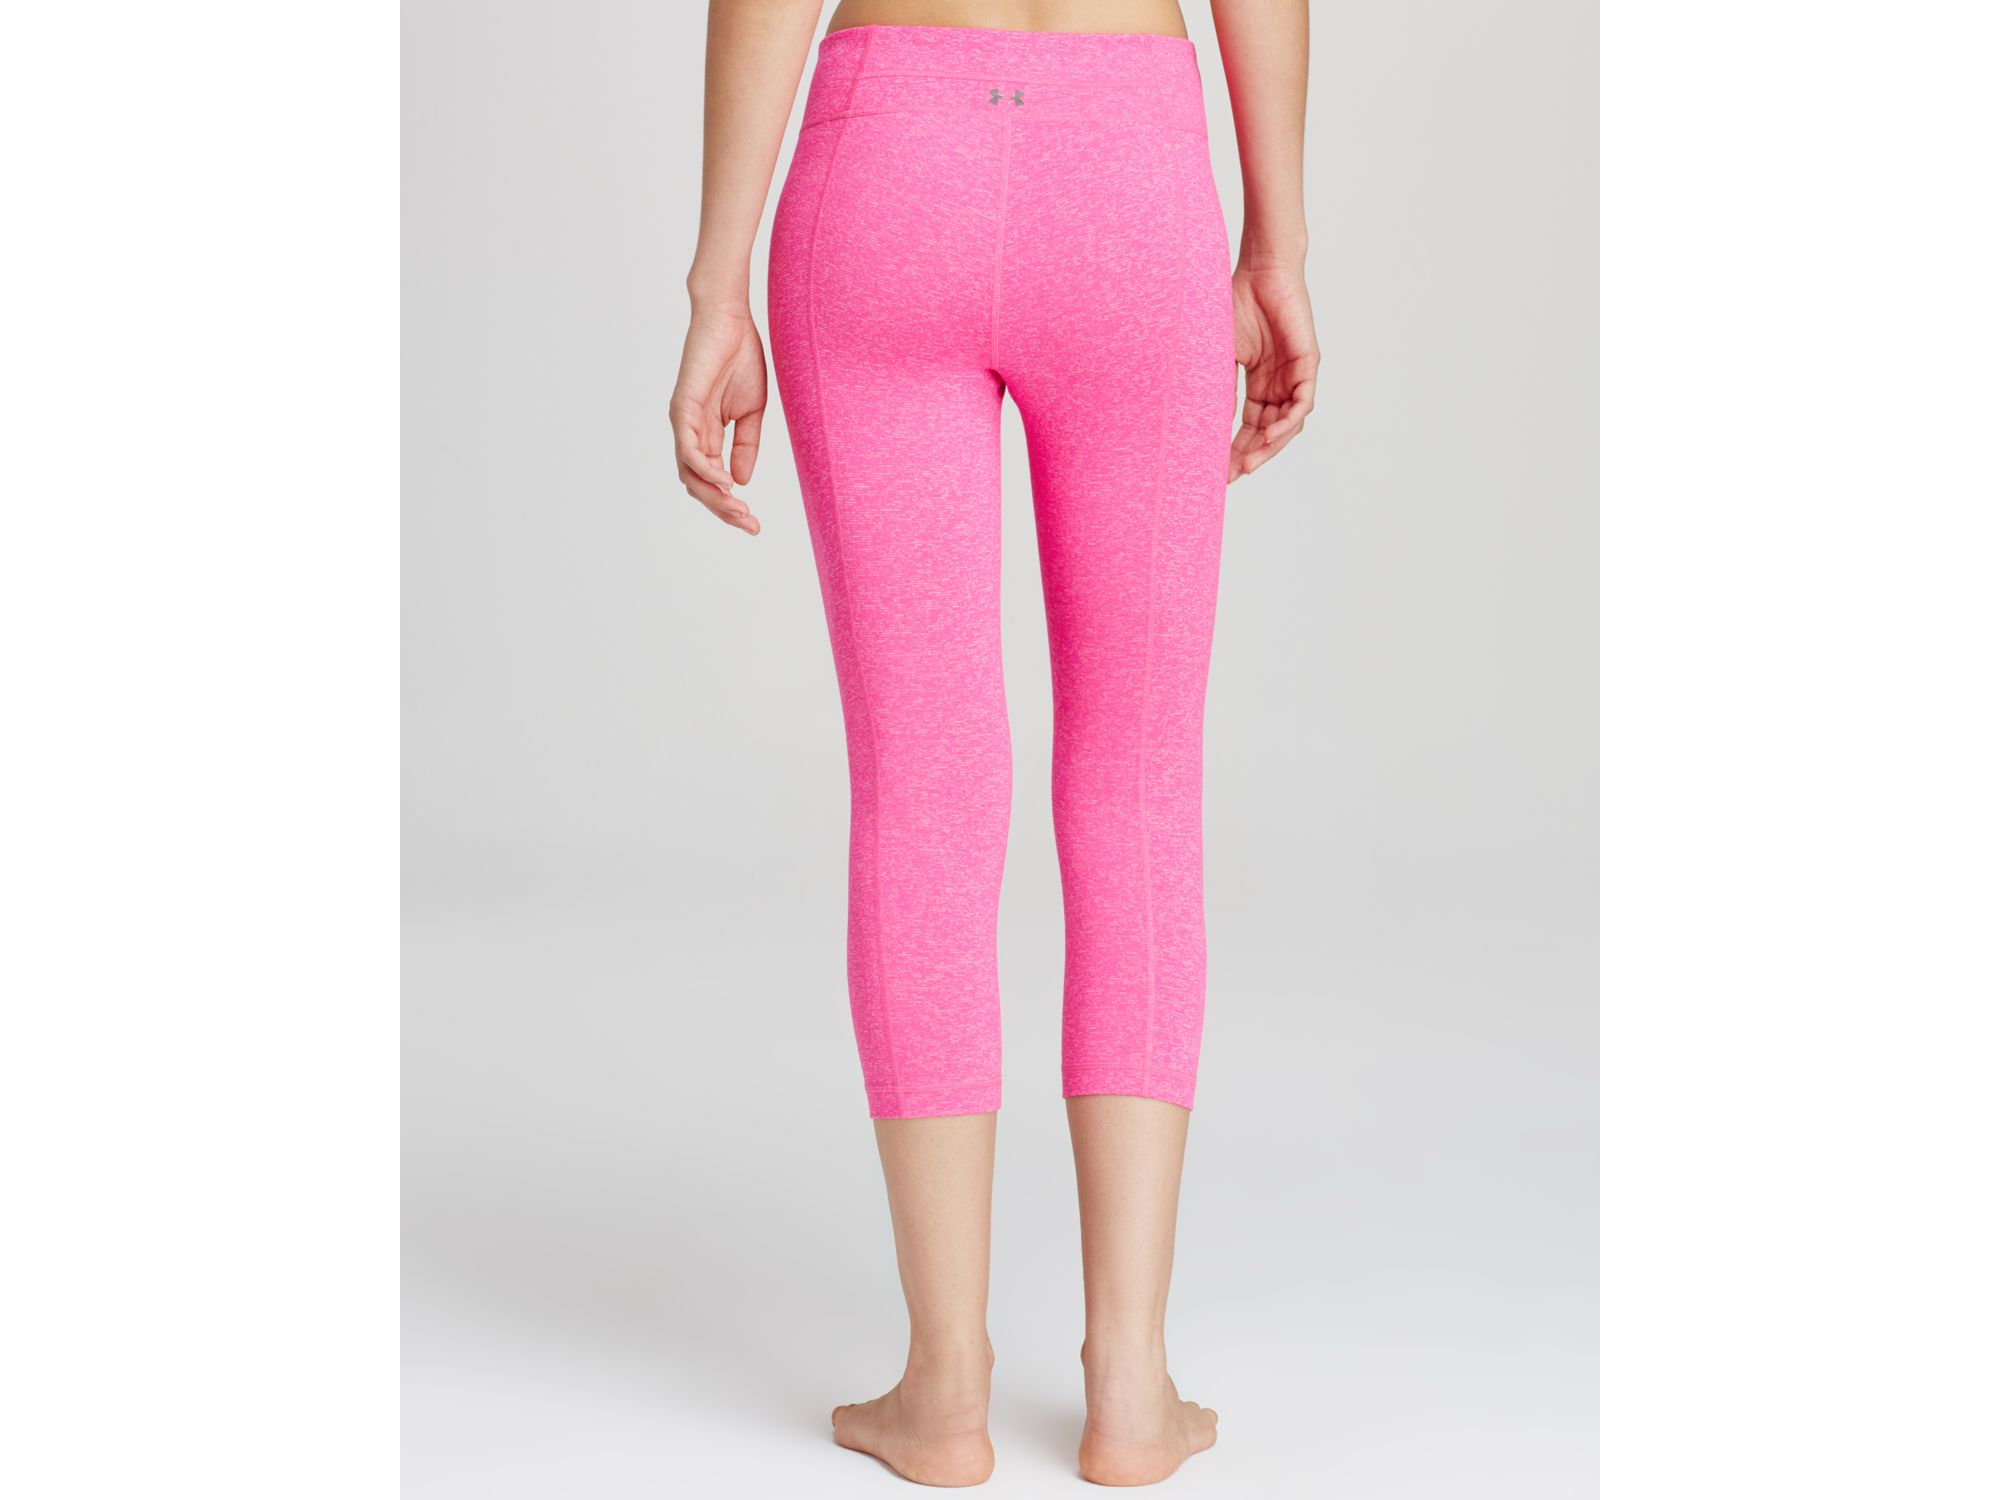 75219a0176ca56 Under Armour Studio Tight Capri Leggings In Pink in Pink - Lyst